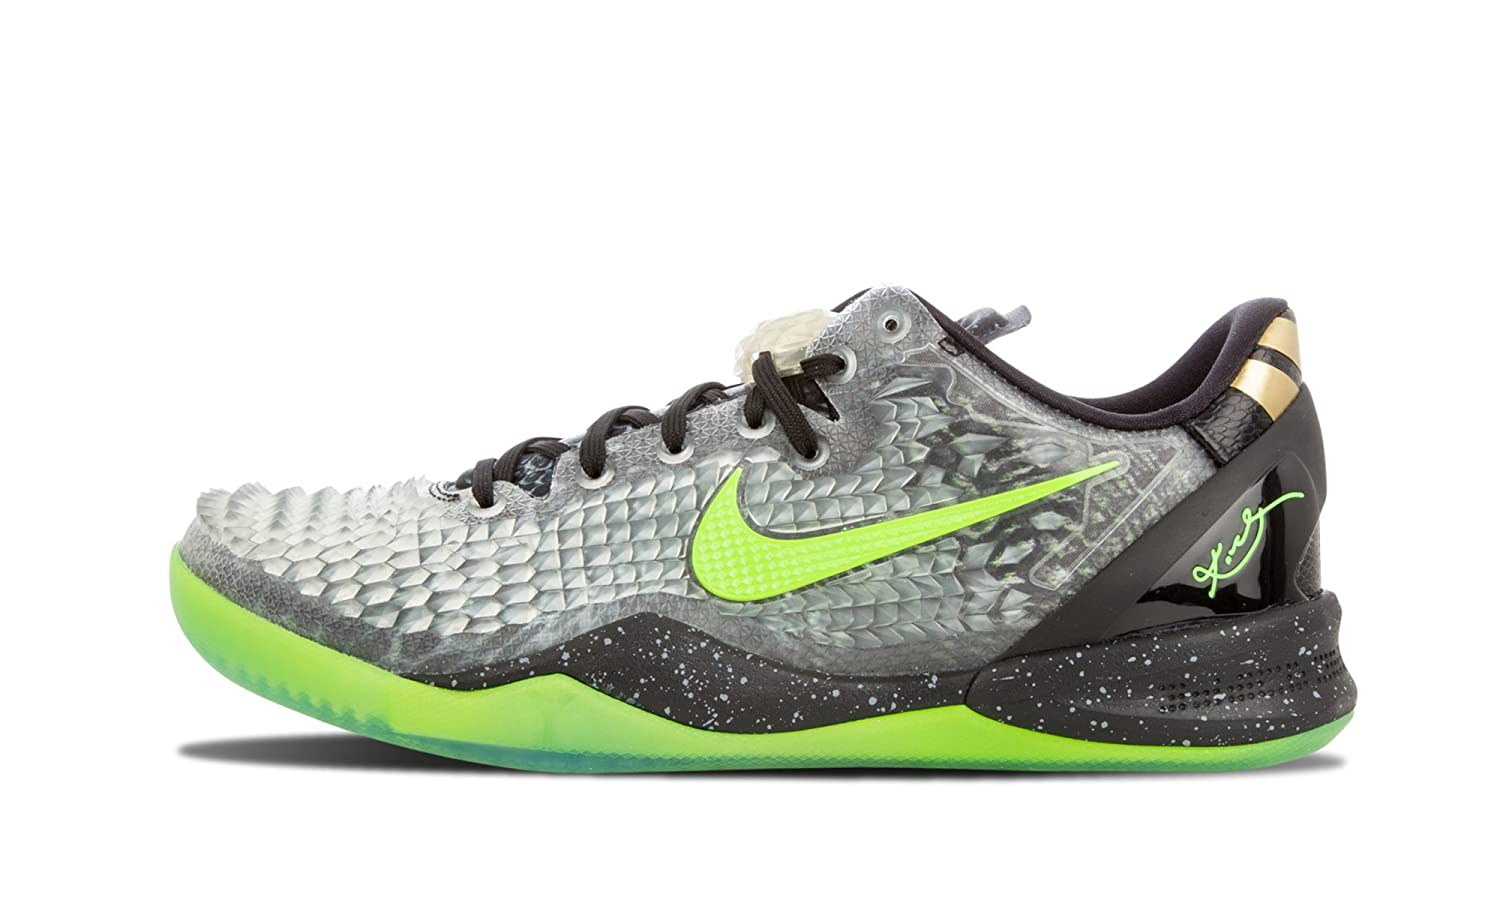 Amazon.com | Nike Mens Kobe 8 System SS "|1500|900|?|929ee0a8c1397e599b59499aa6444b44|False|UNLIKELY|0.3510776162147522